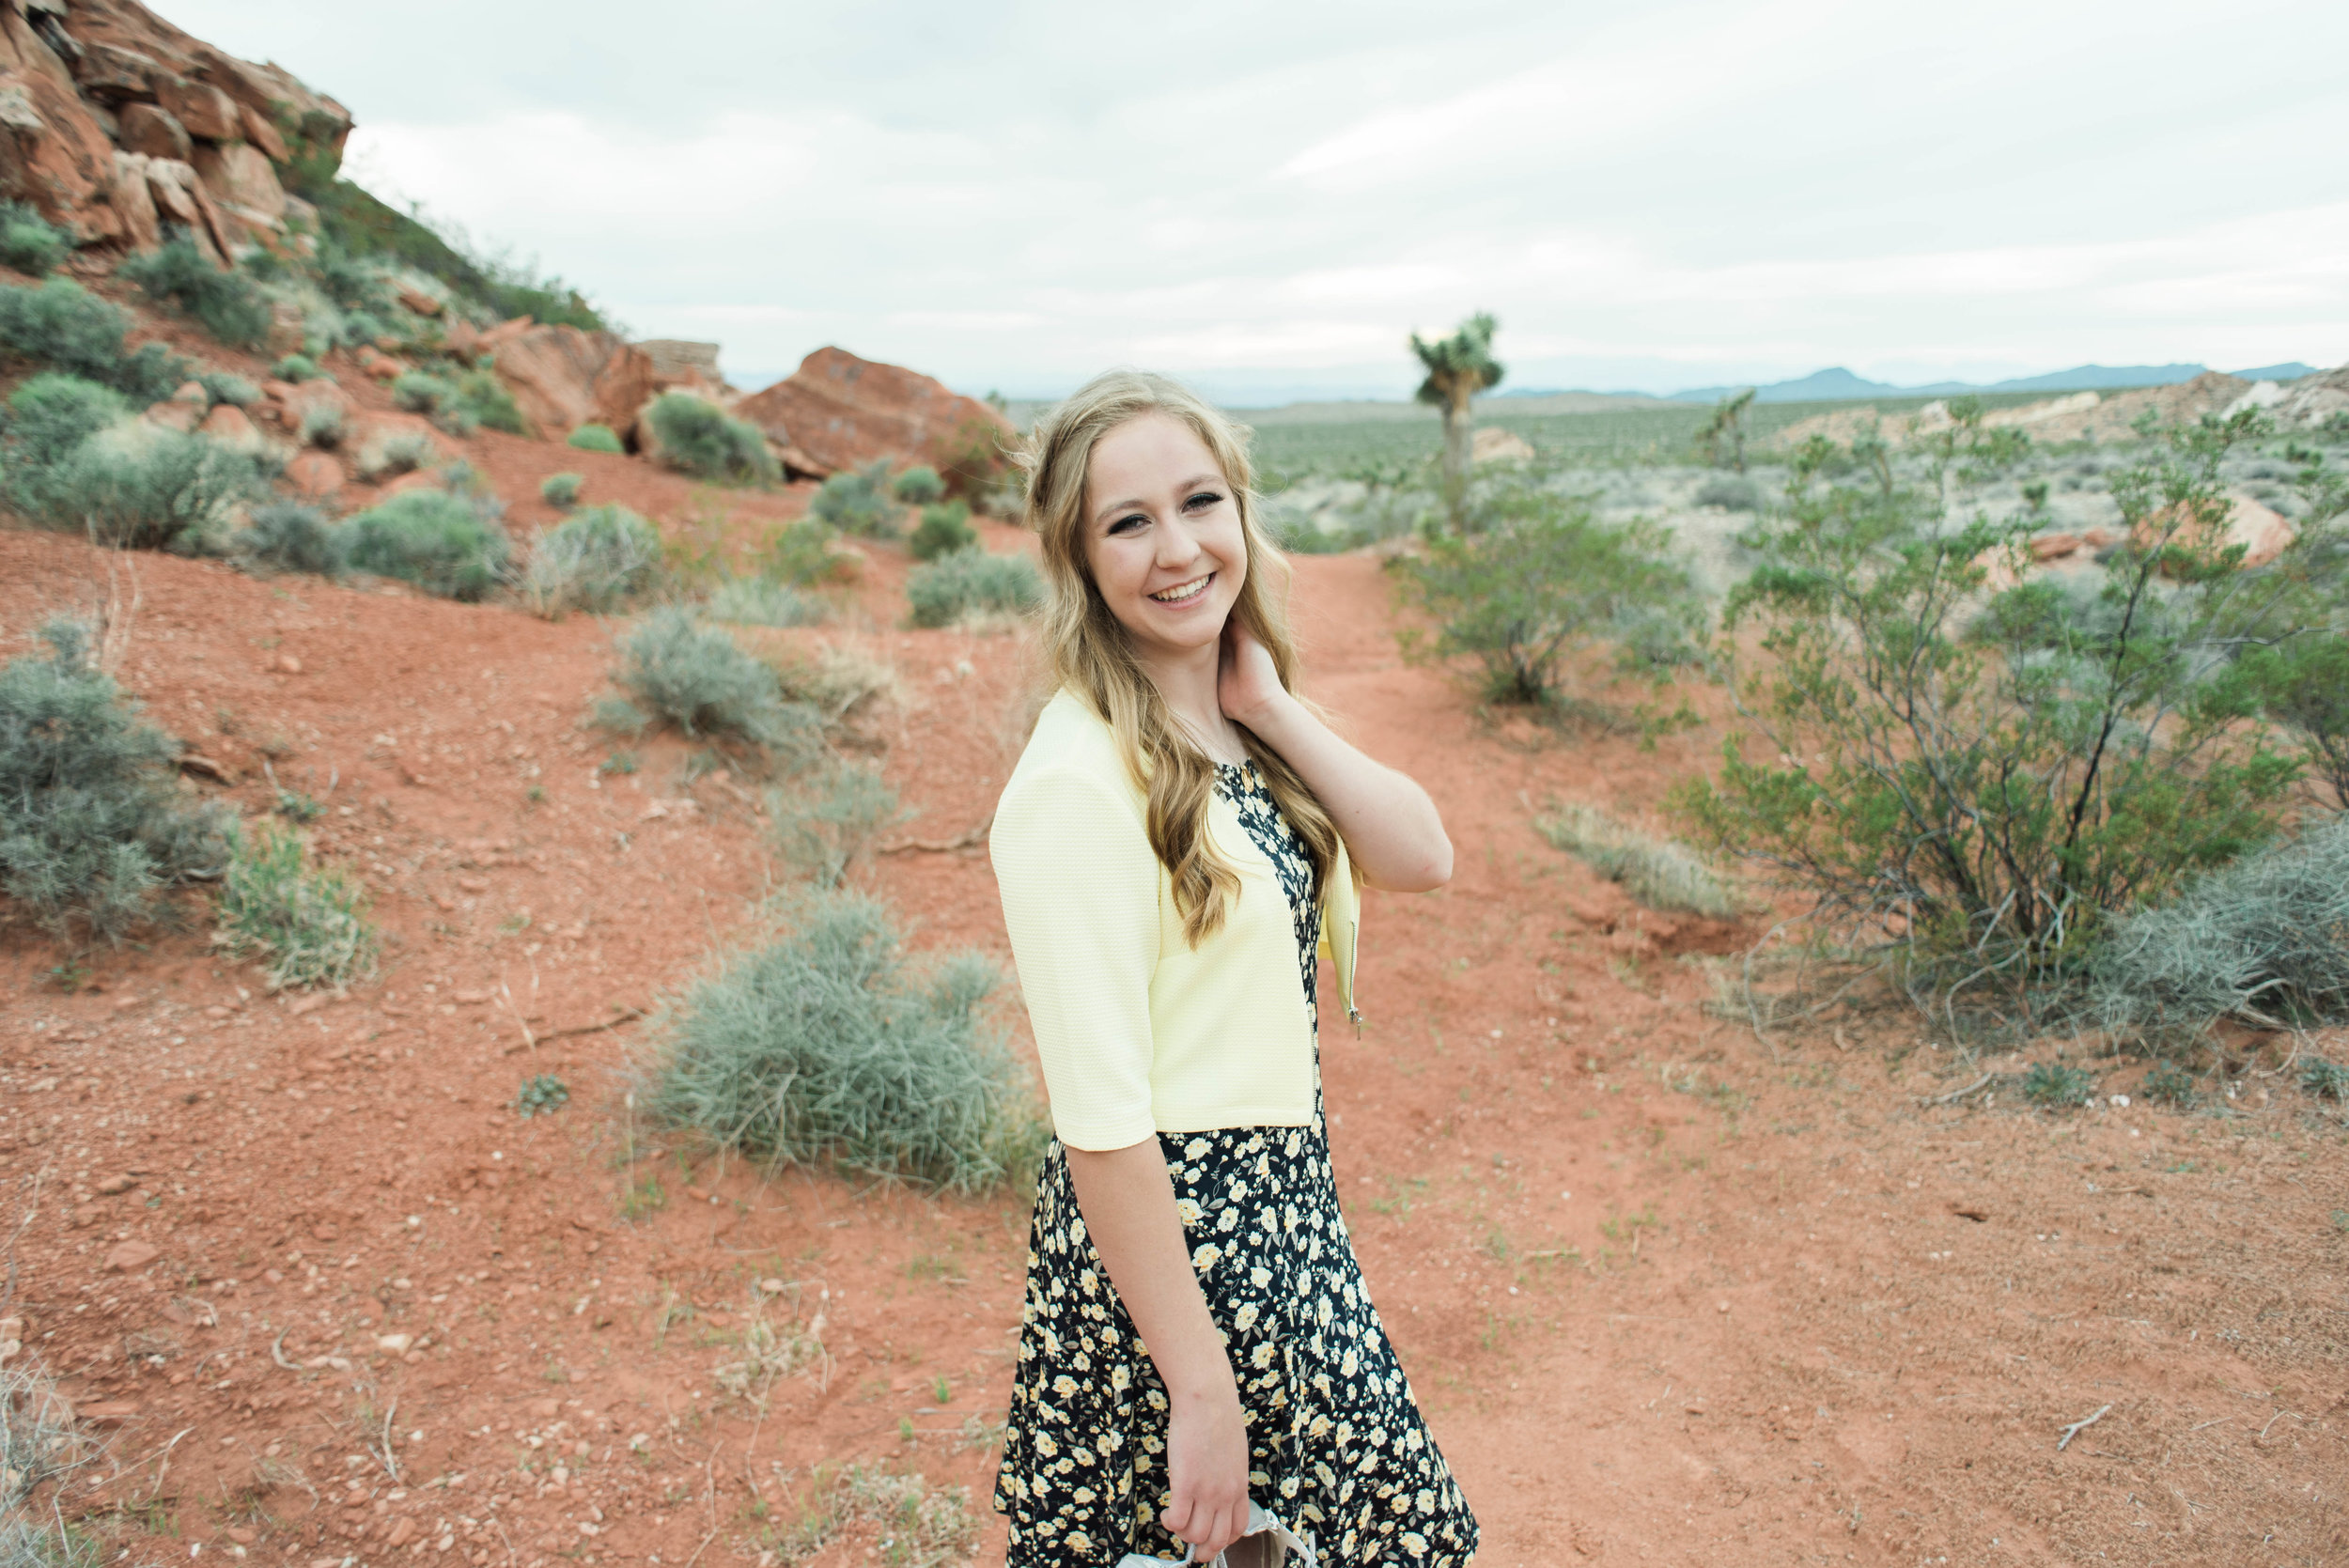 CALEE-SENIOR-PICTURES-sadiebanksphotography-142.jpg